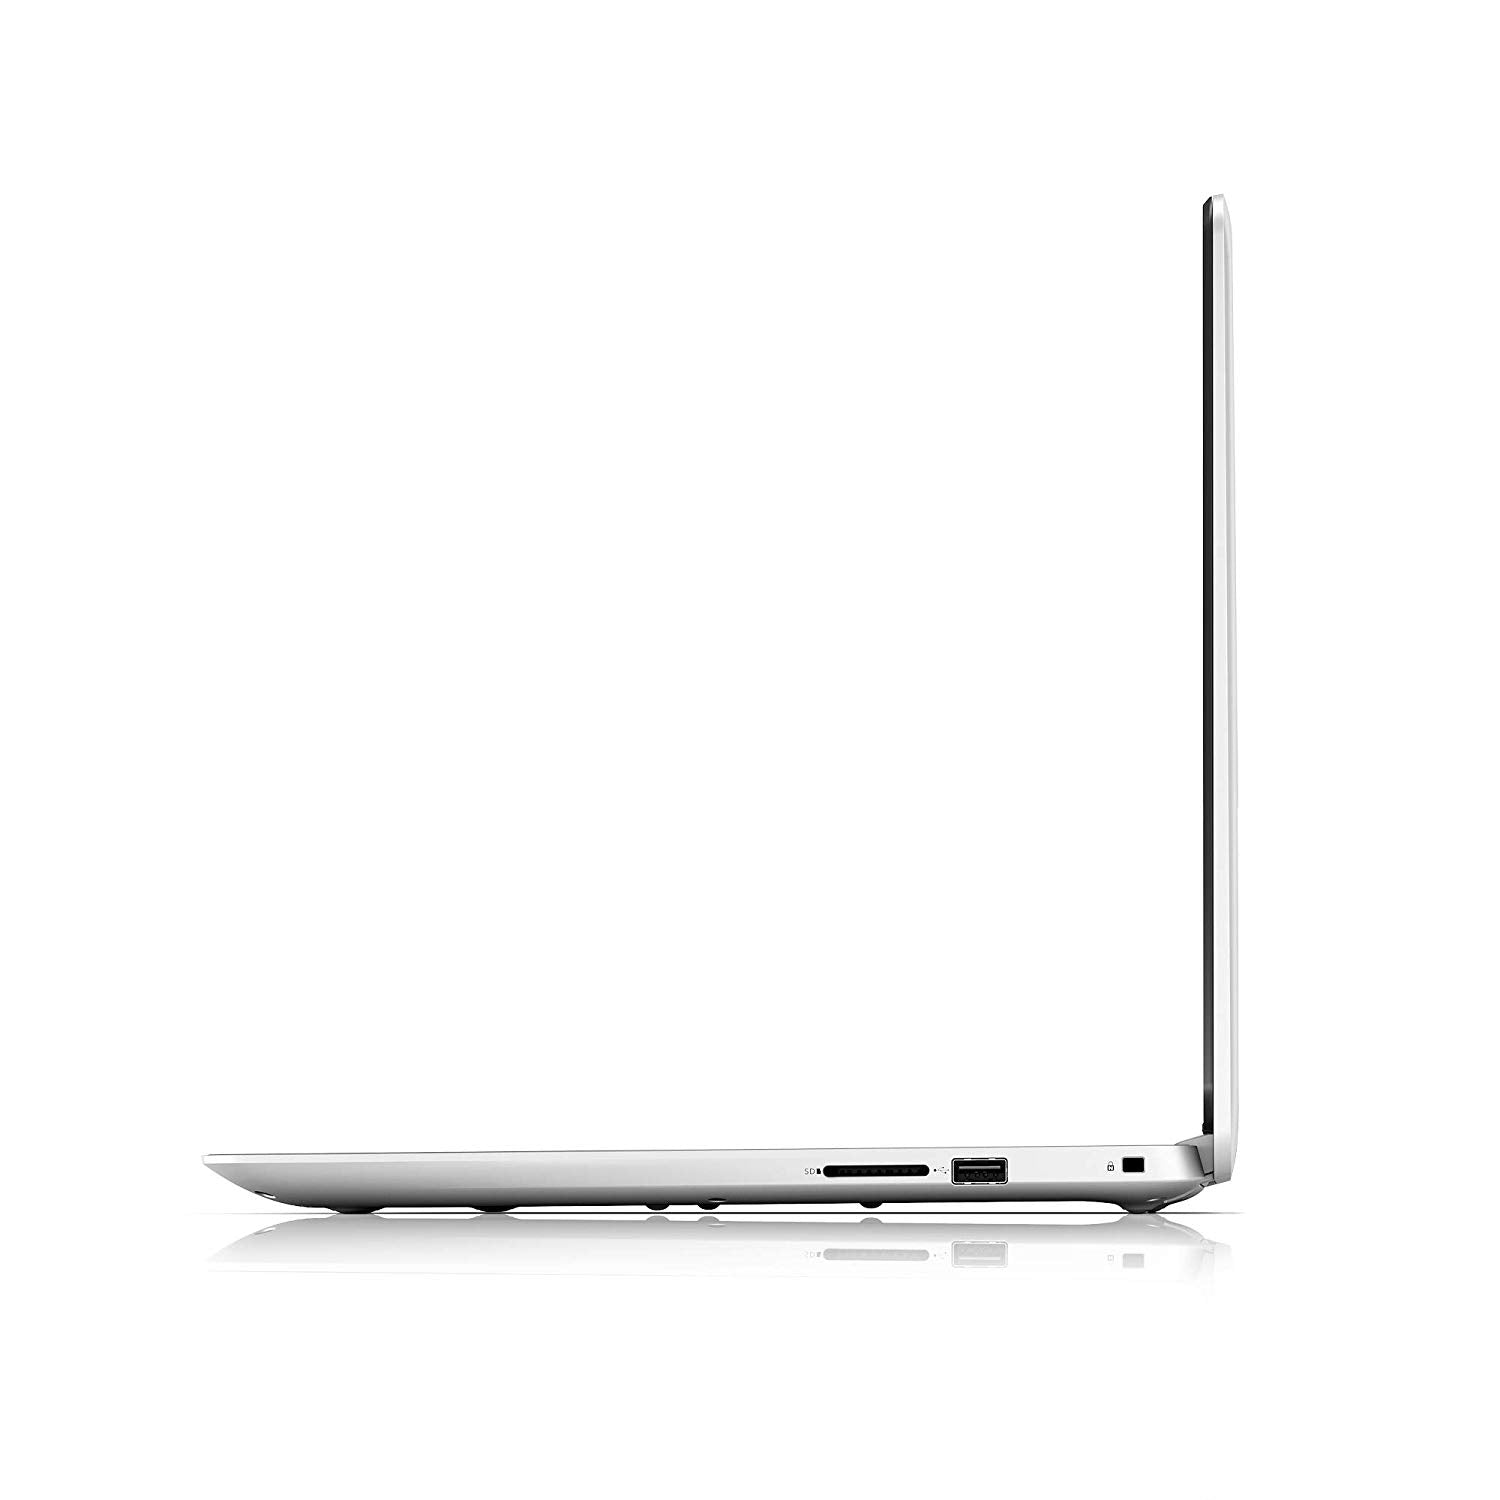 Dell Inspiron 15 5584 | 8th Gen Intel(R) Core(Tm) i3-8145U Proc(4Mb Cache, up to 3.9 GHz) | 4GB RAM | 256SSD